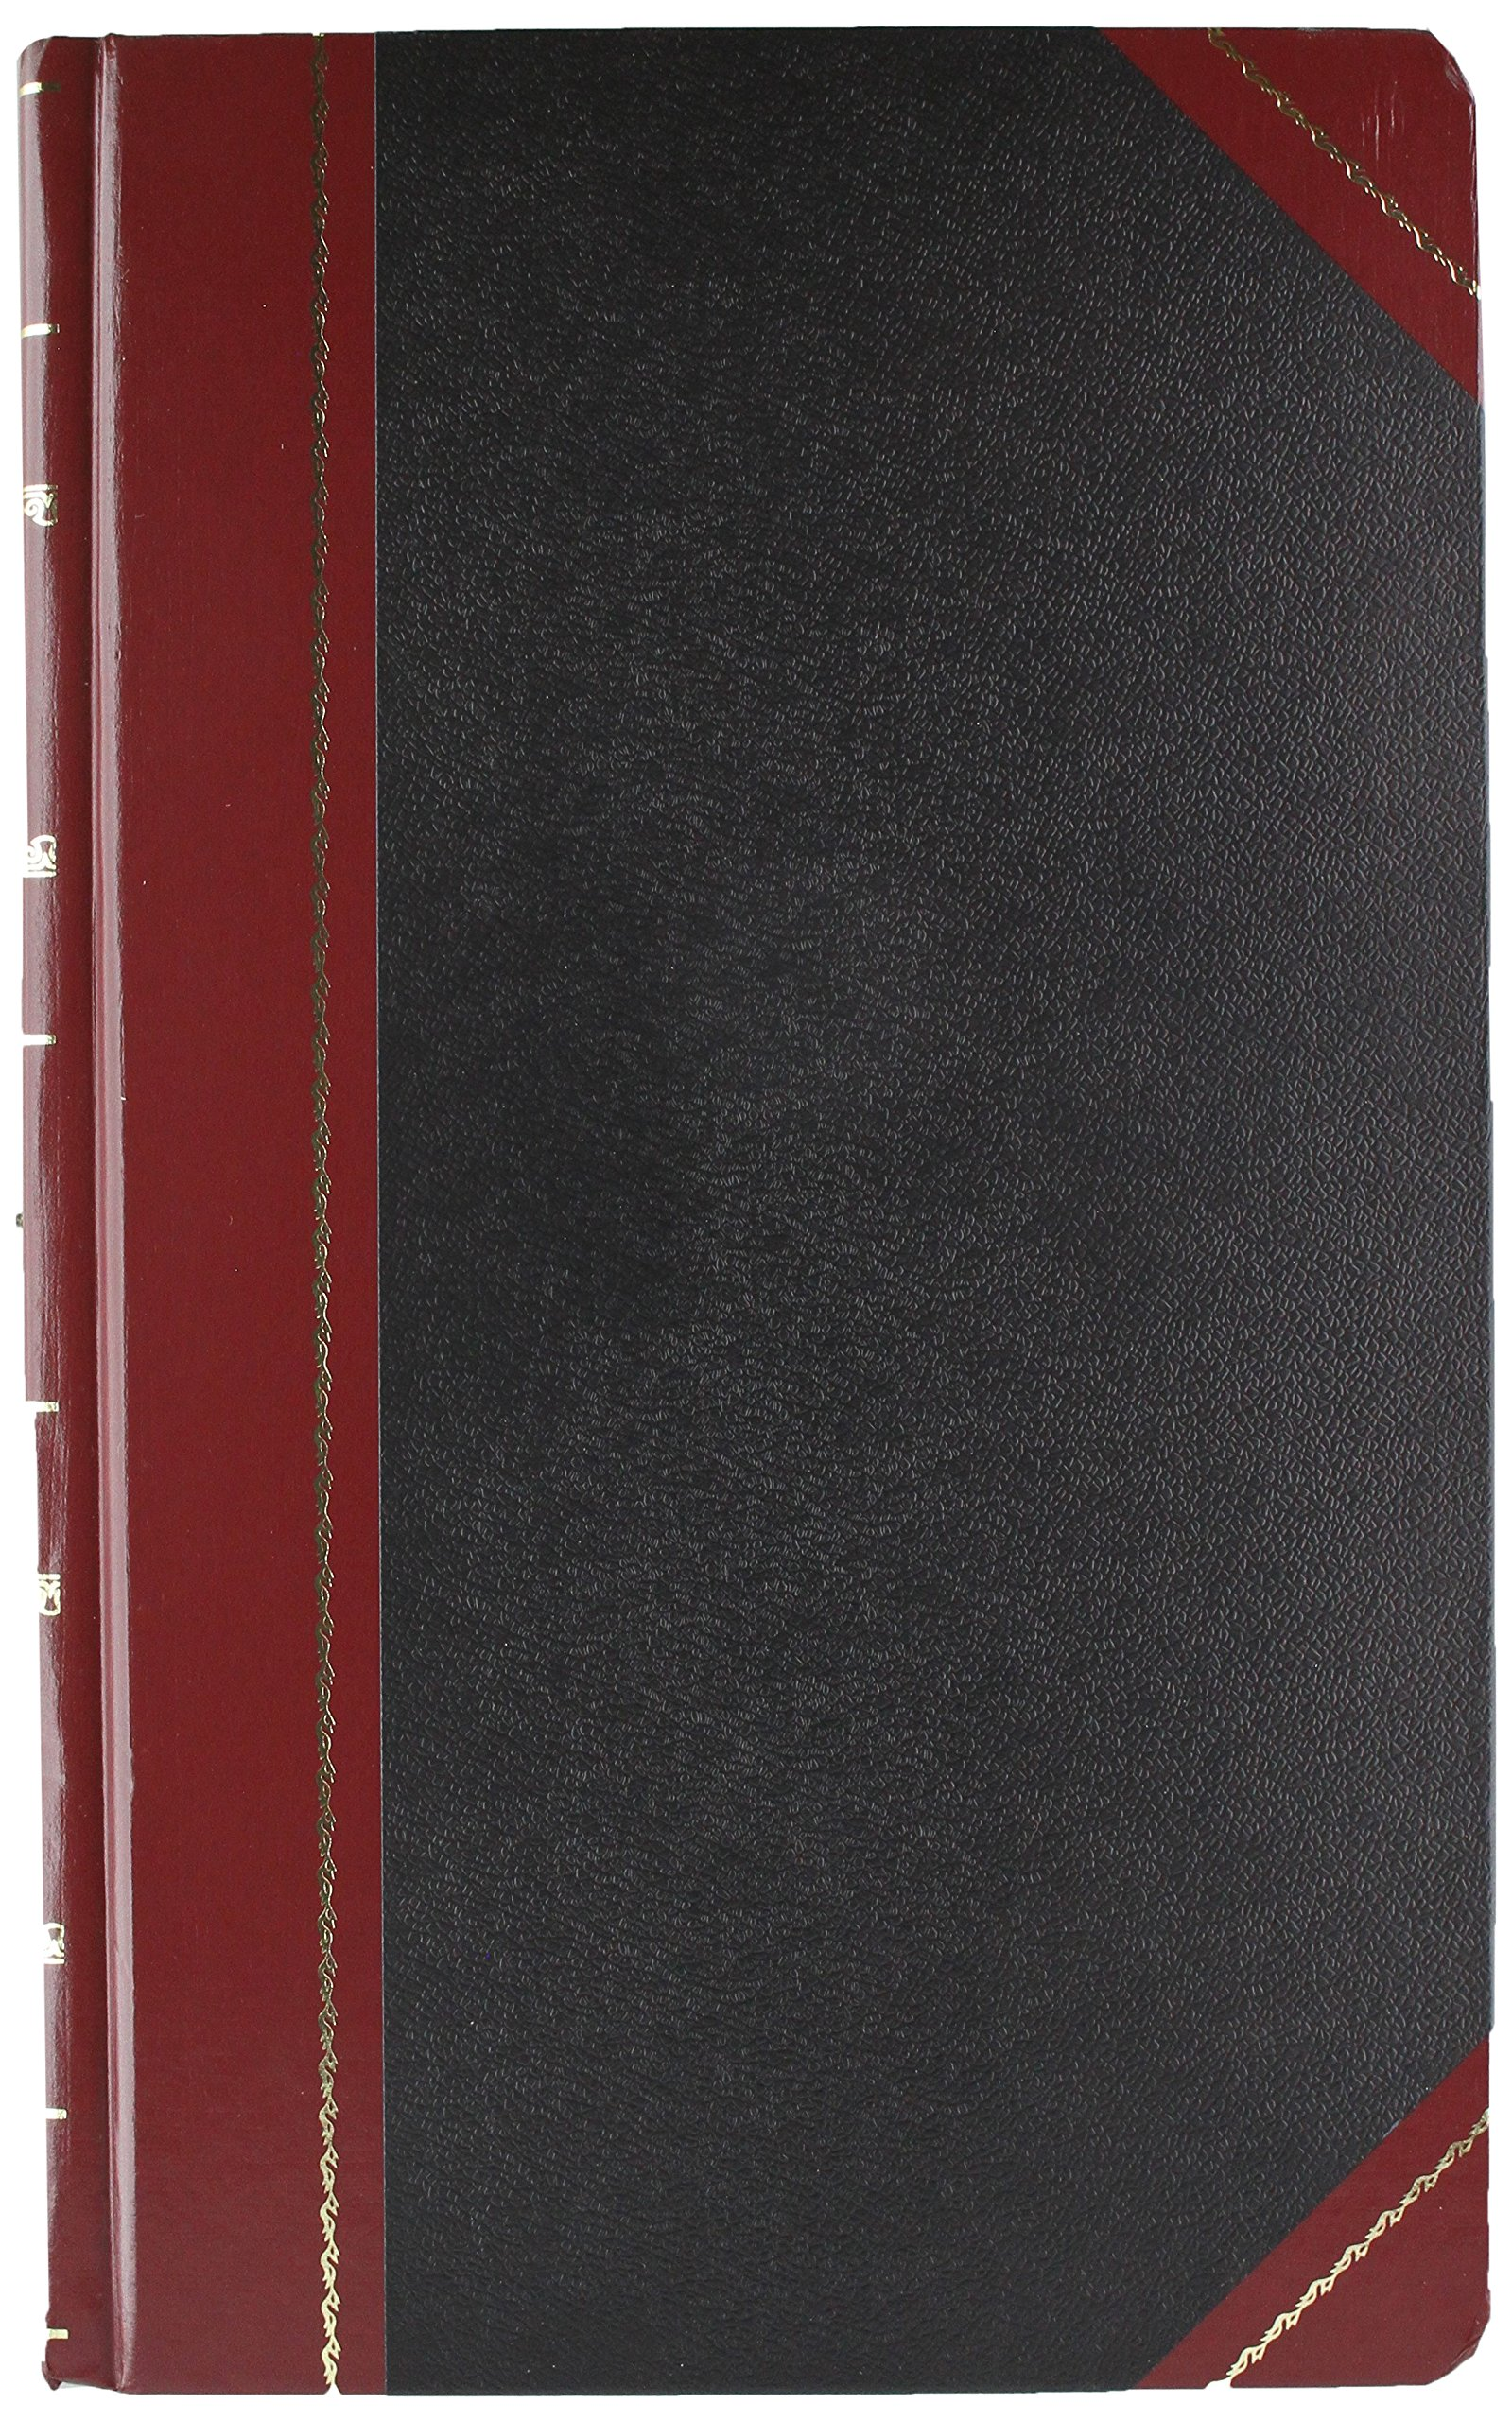 Boorum & Pease 9500J Record/Account Book, Journal Rule, Black/Red, 500 Pages, 14 1/8 x 8 5/8